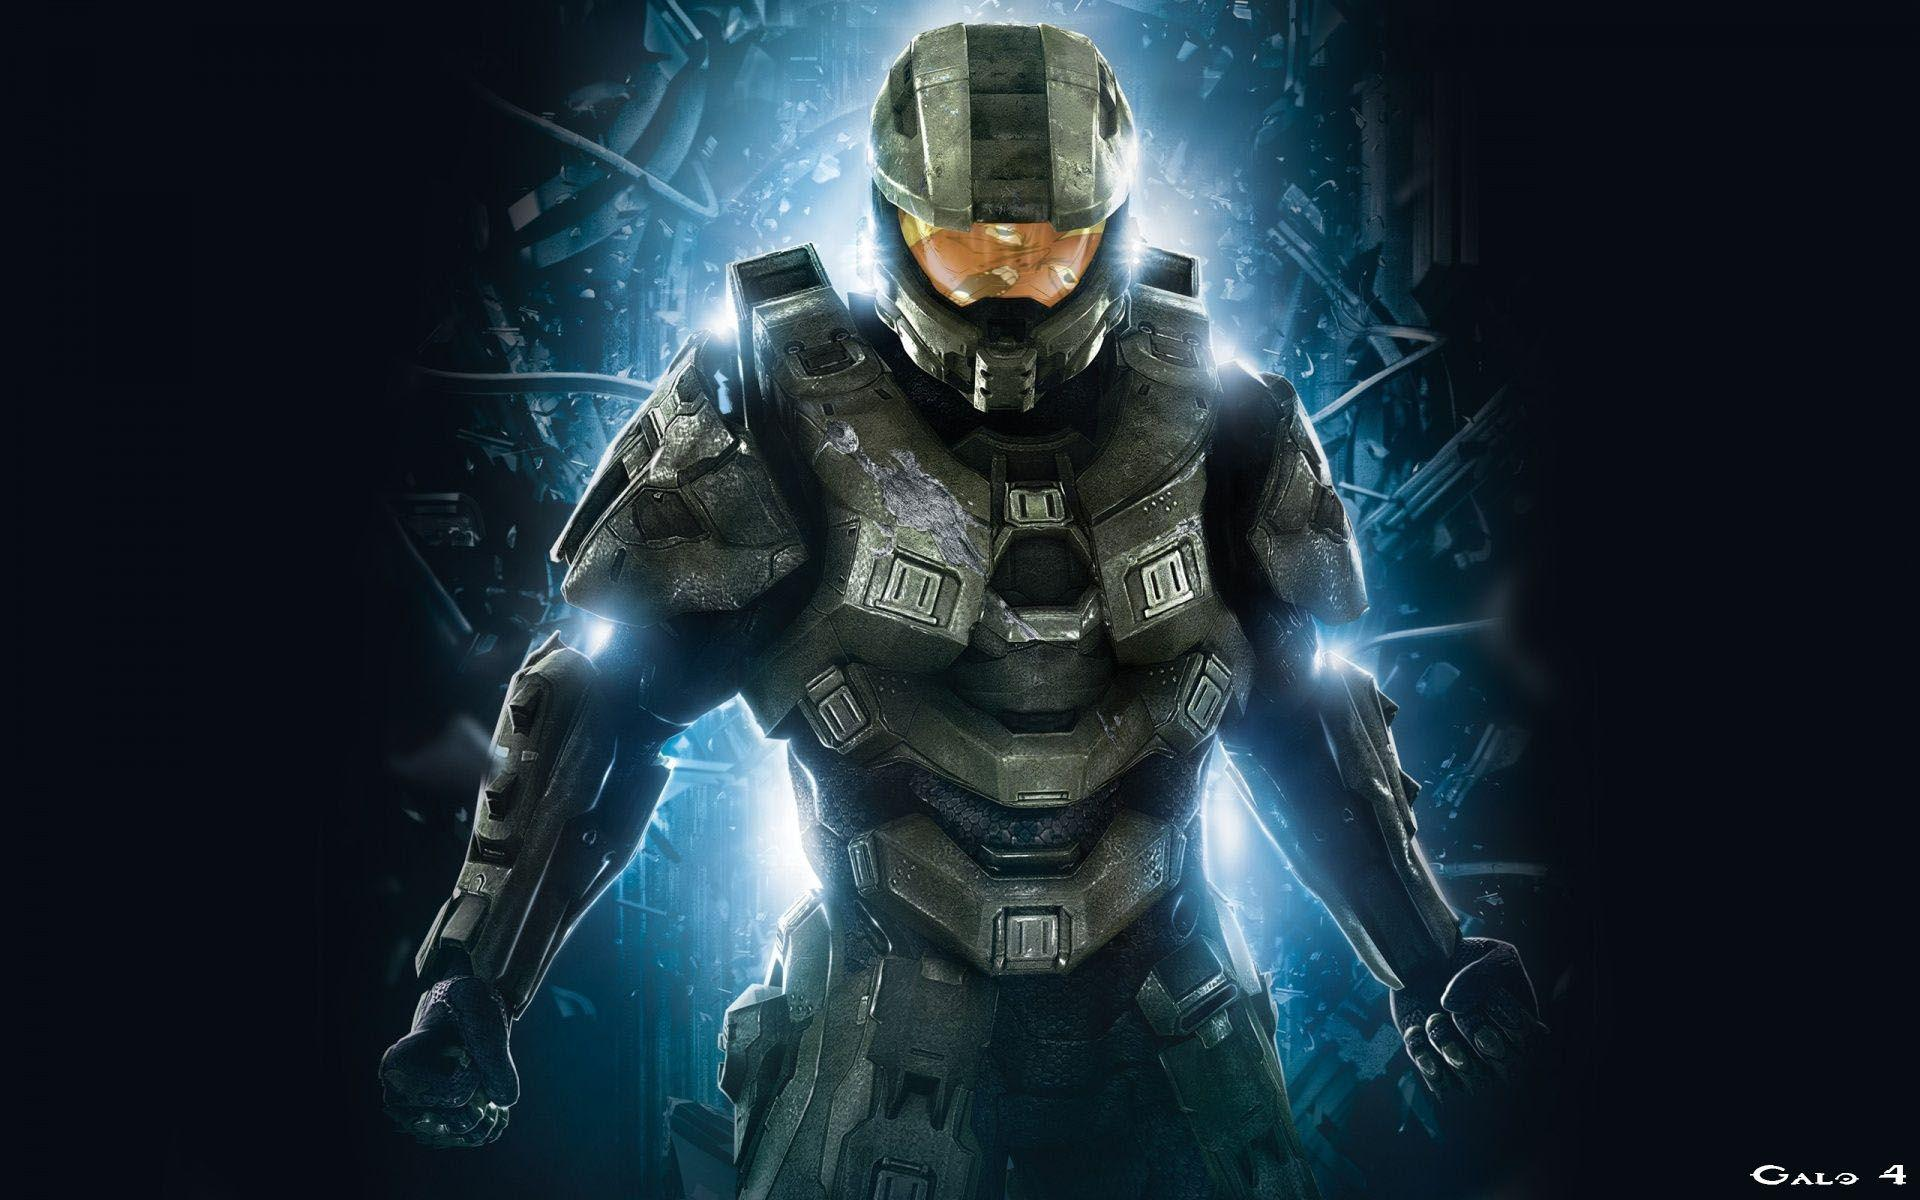 Hd wallpaper cave - 84 Halo 4 Wallpapers Halo 4 Backgrounds